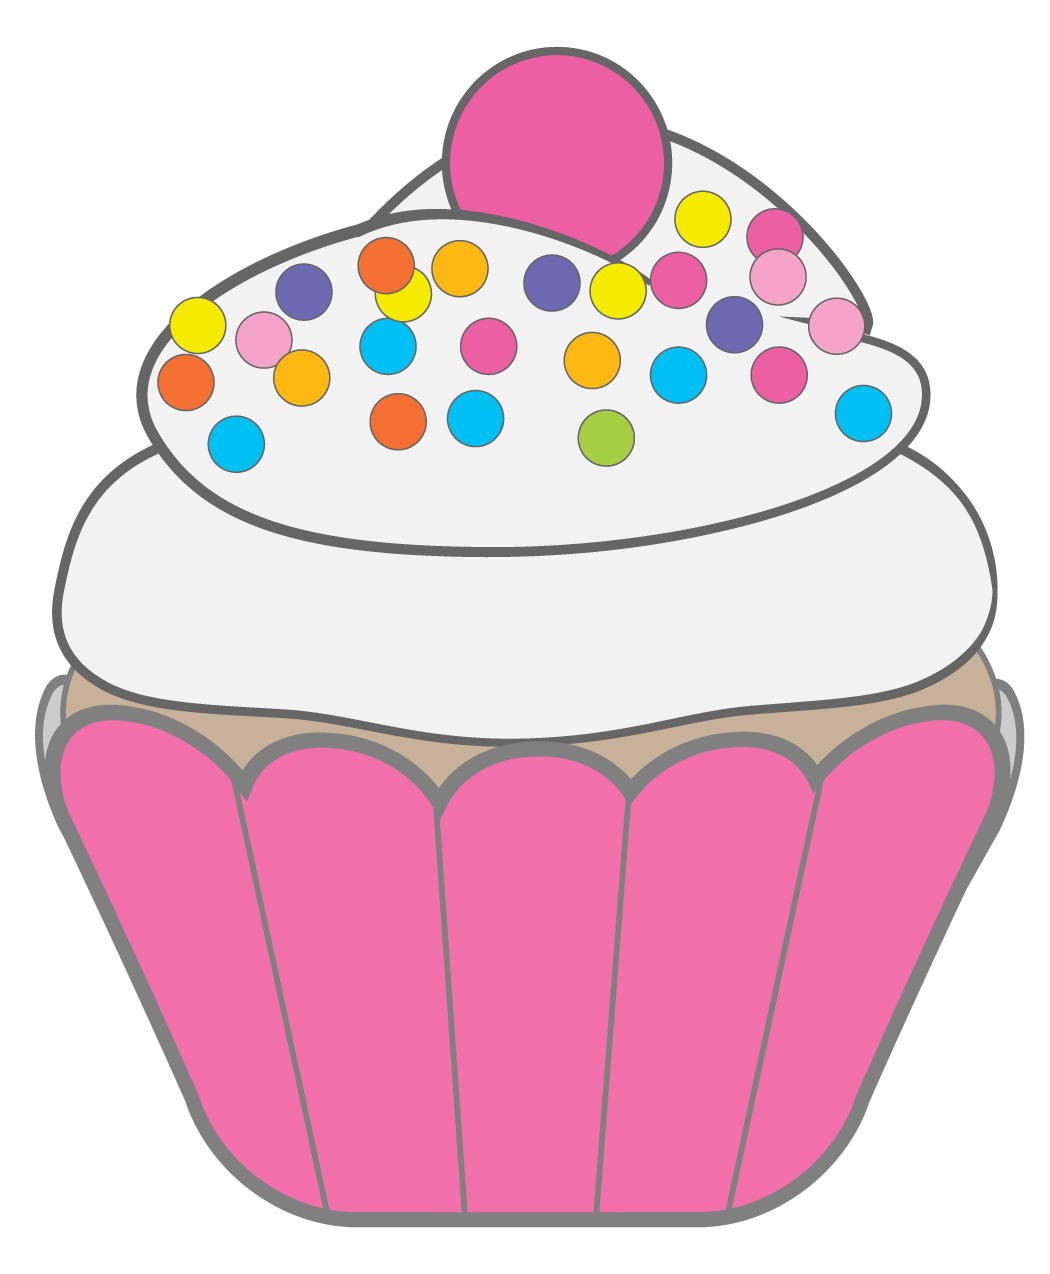 the barefoot chorister mama cakes barefoot primary chorister rh pinterest com cupcake clipart free cupcake clipart images free